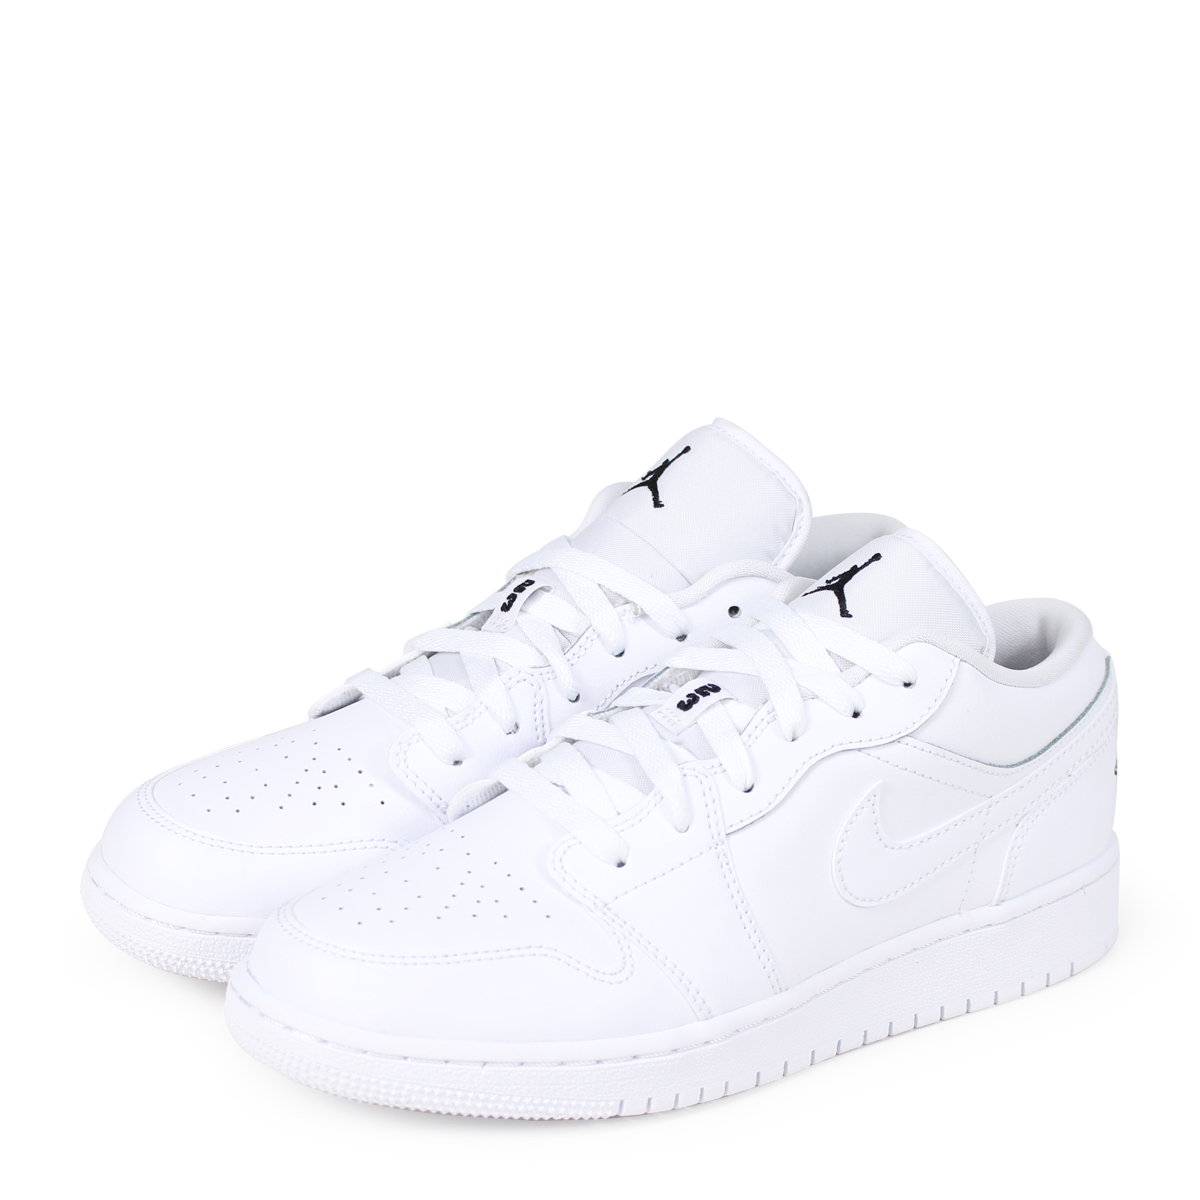 air jordan 1 white low